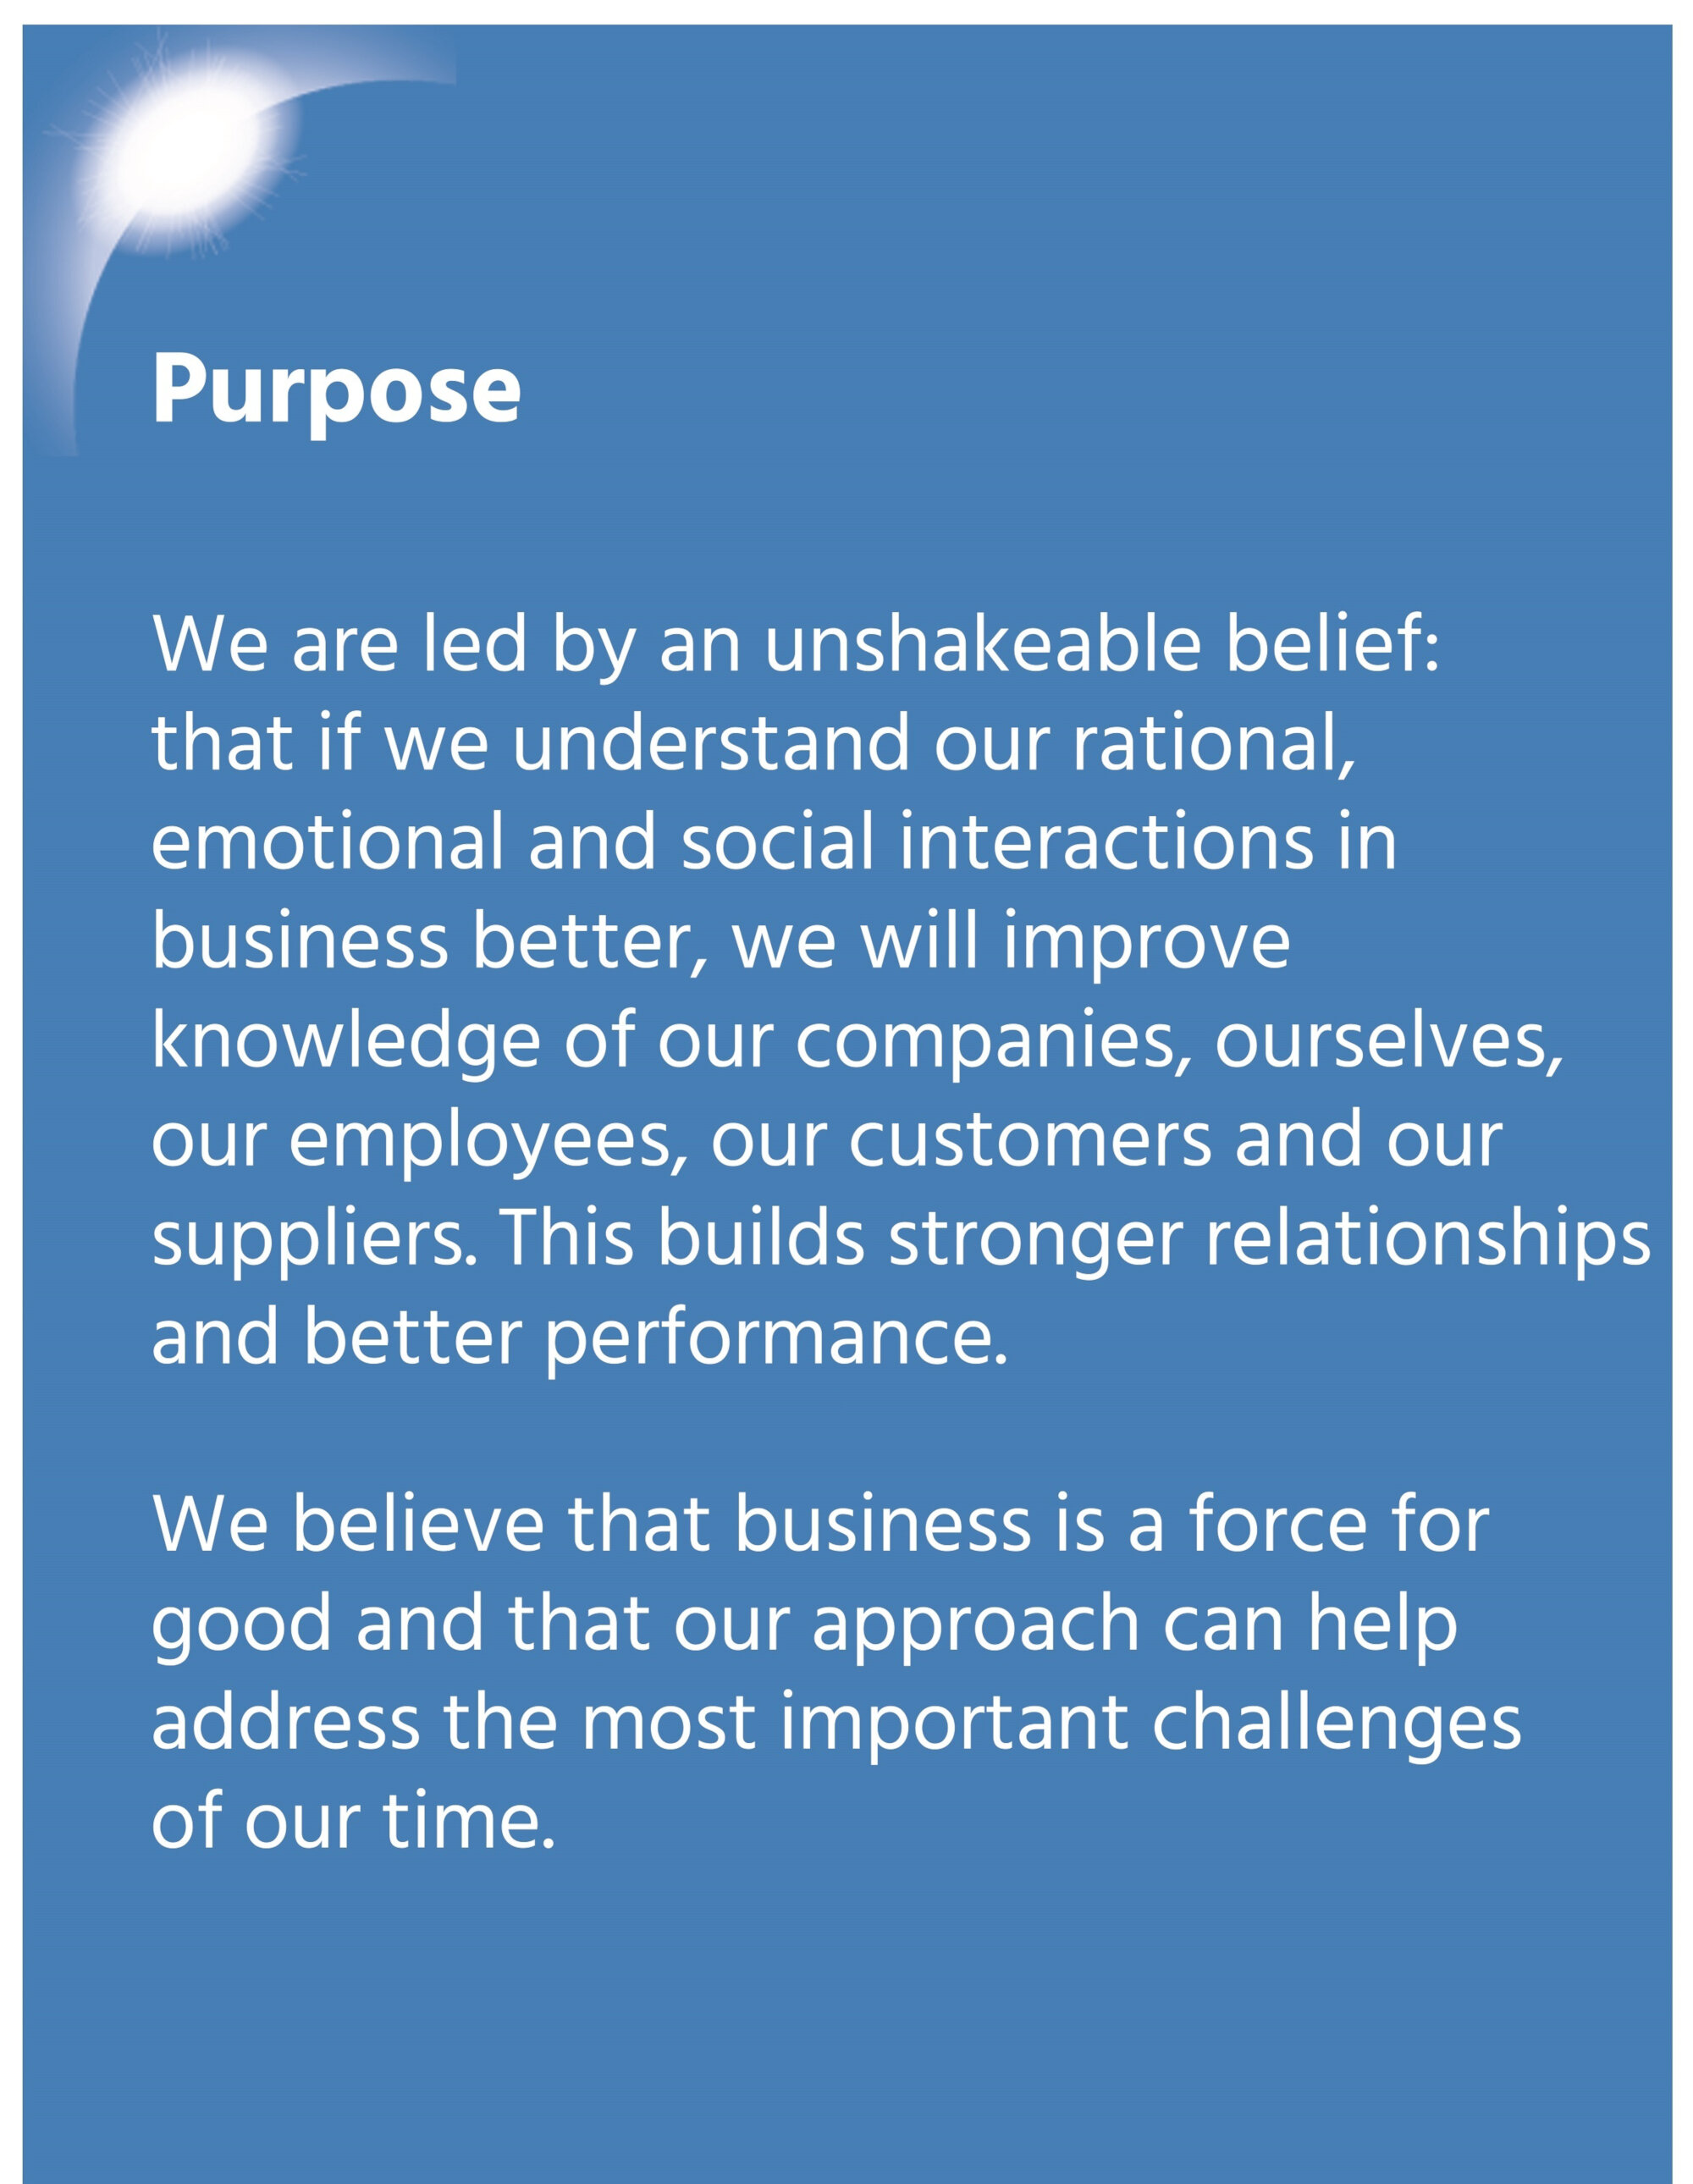 Why - our purpose